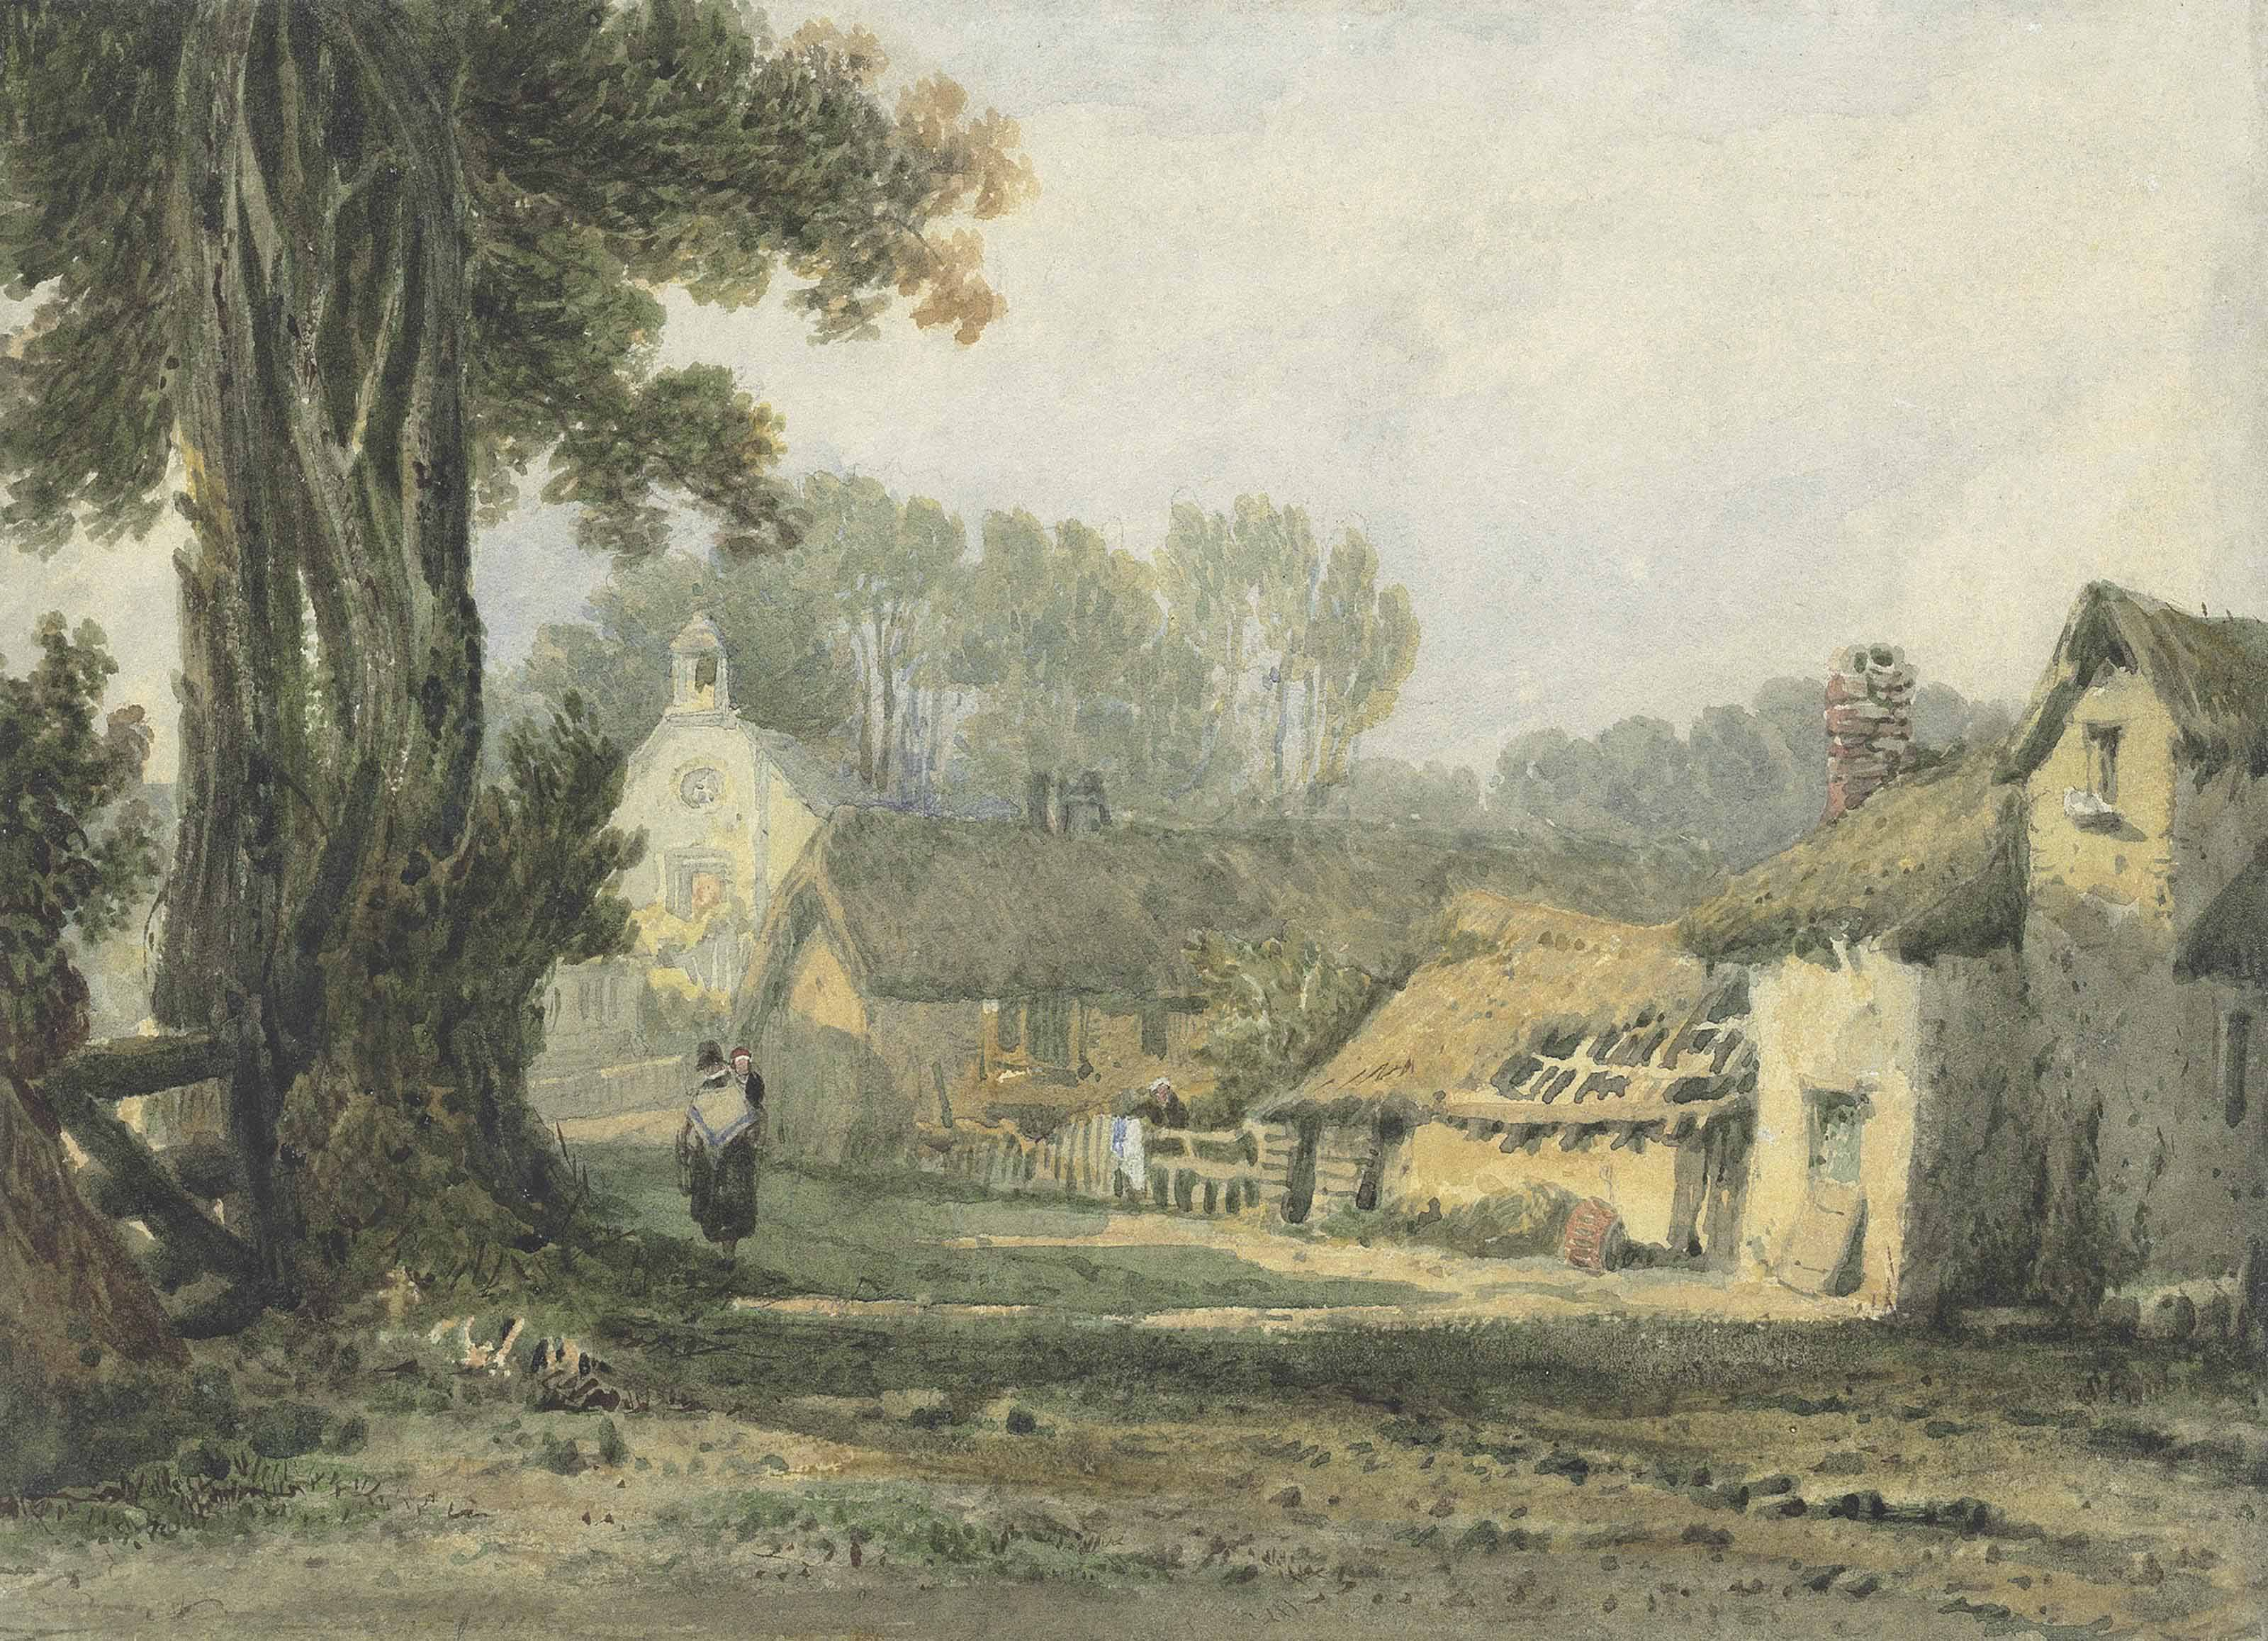 Circle of Samuel Prout, O.W.S. (Plymouth 1783-1852 Camberwell)